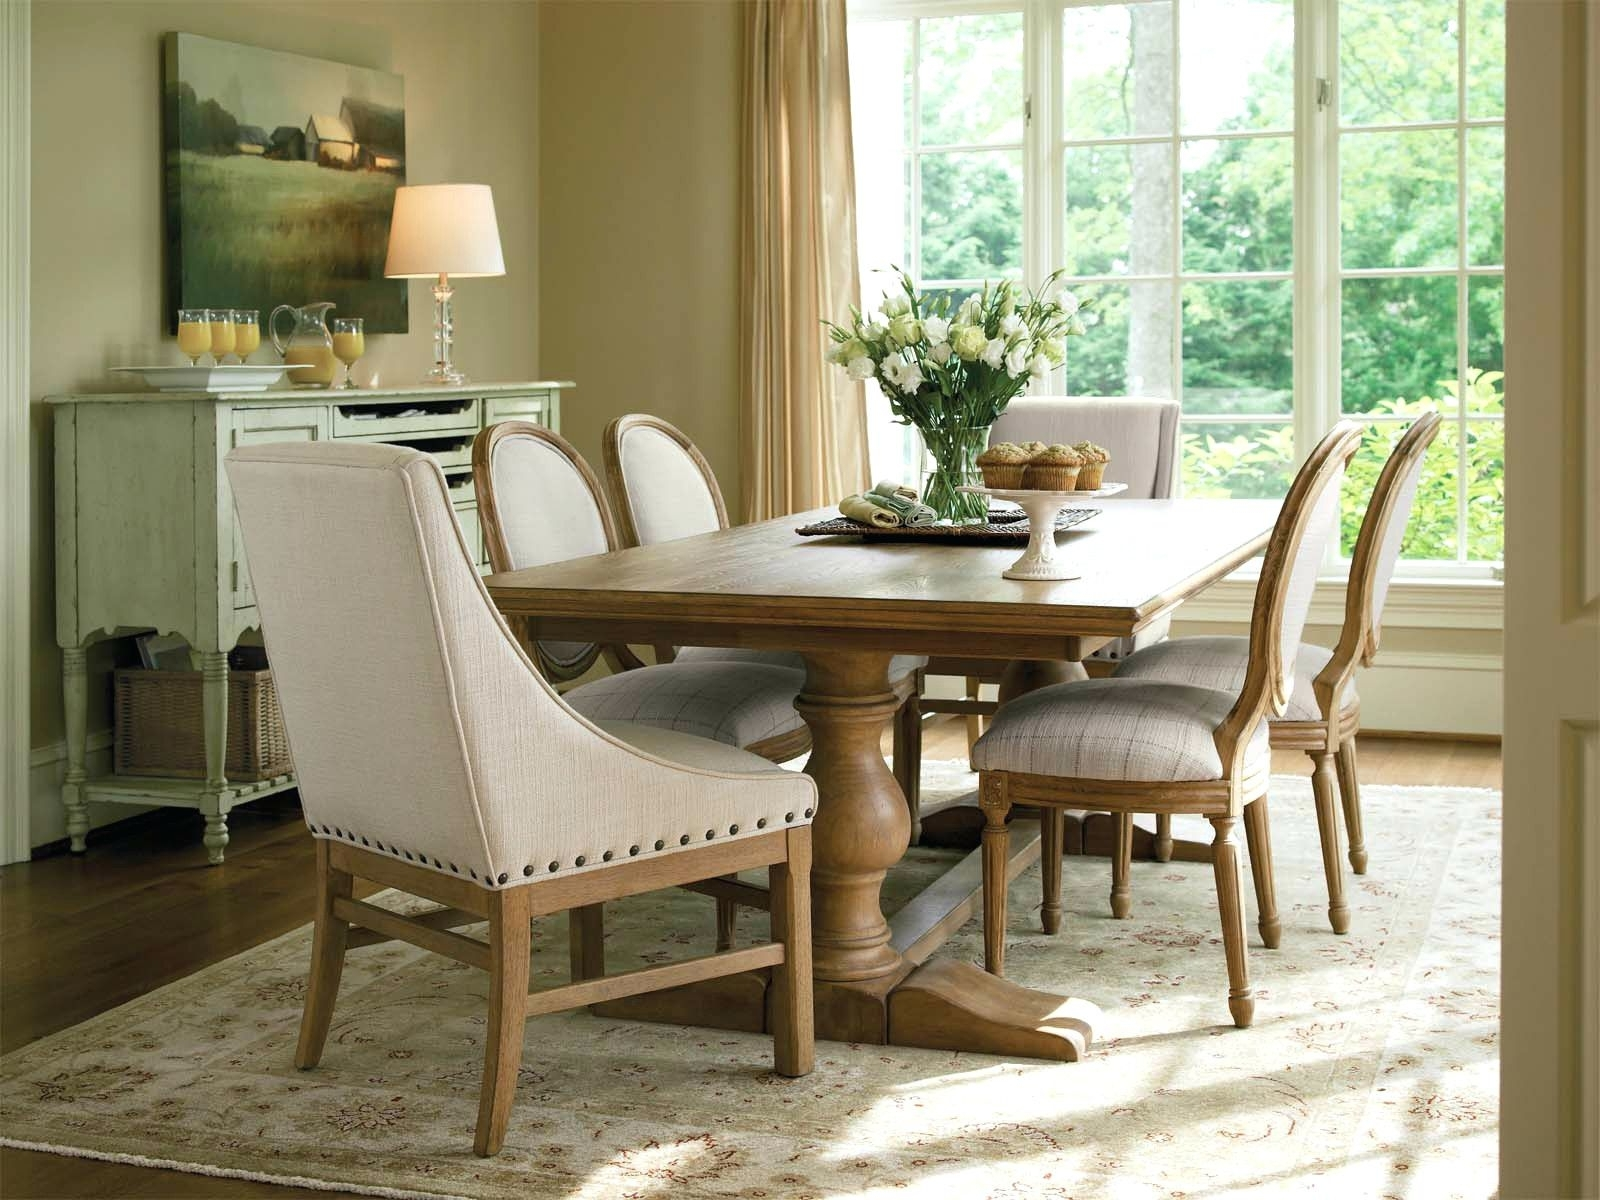 French Country Dining Table With Bench Country Style Dining Table With Regard To Most Current French Country Dining Tables (View 6 of 25)